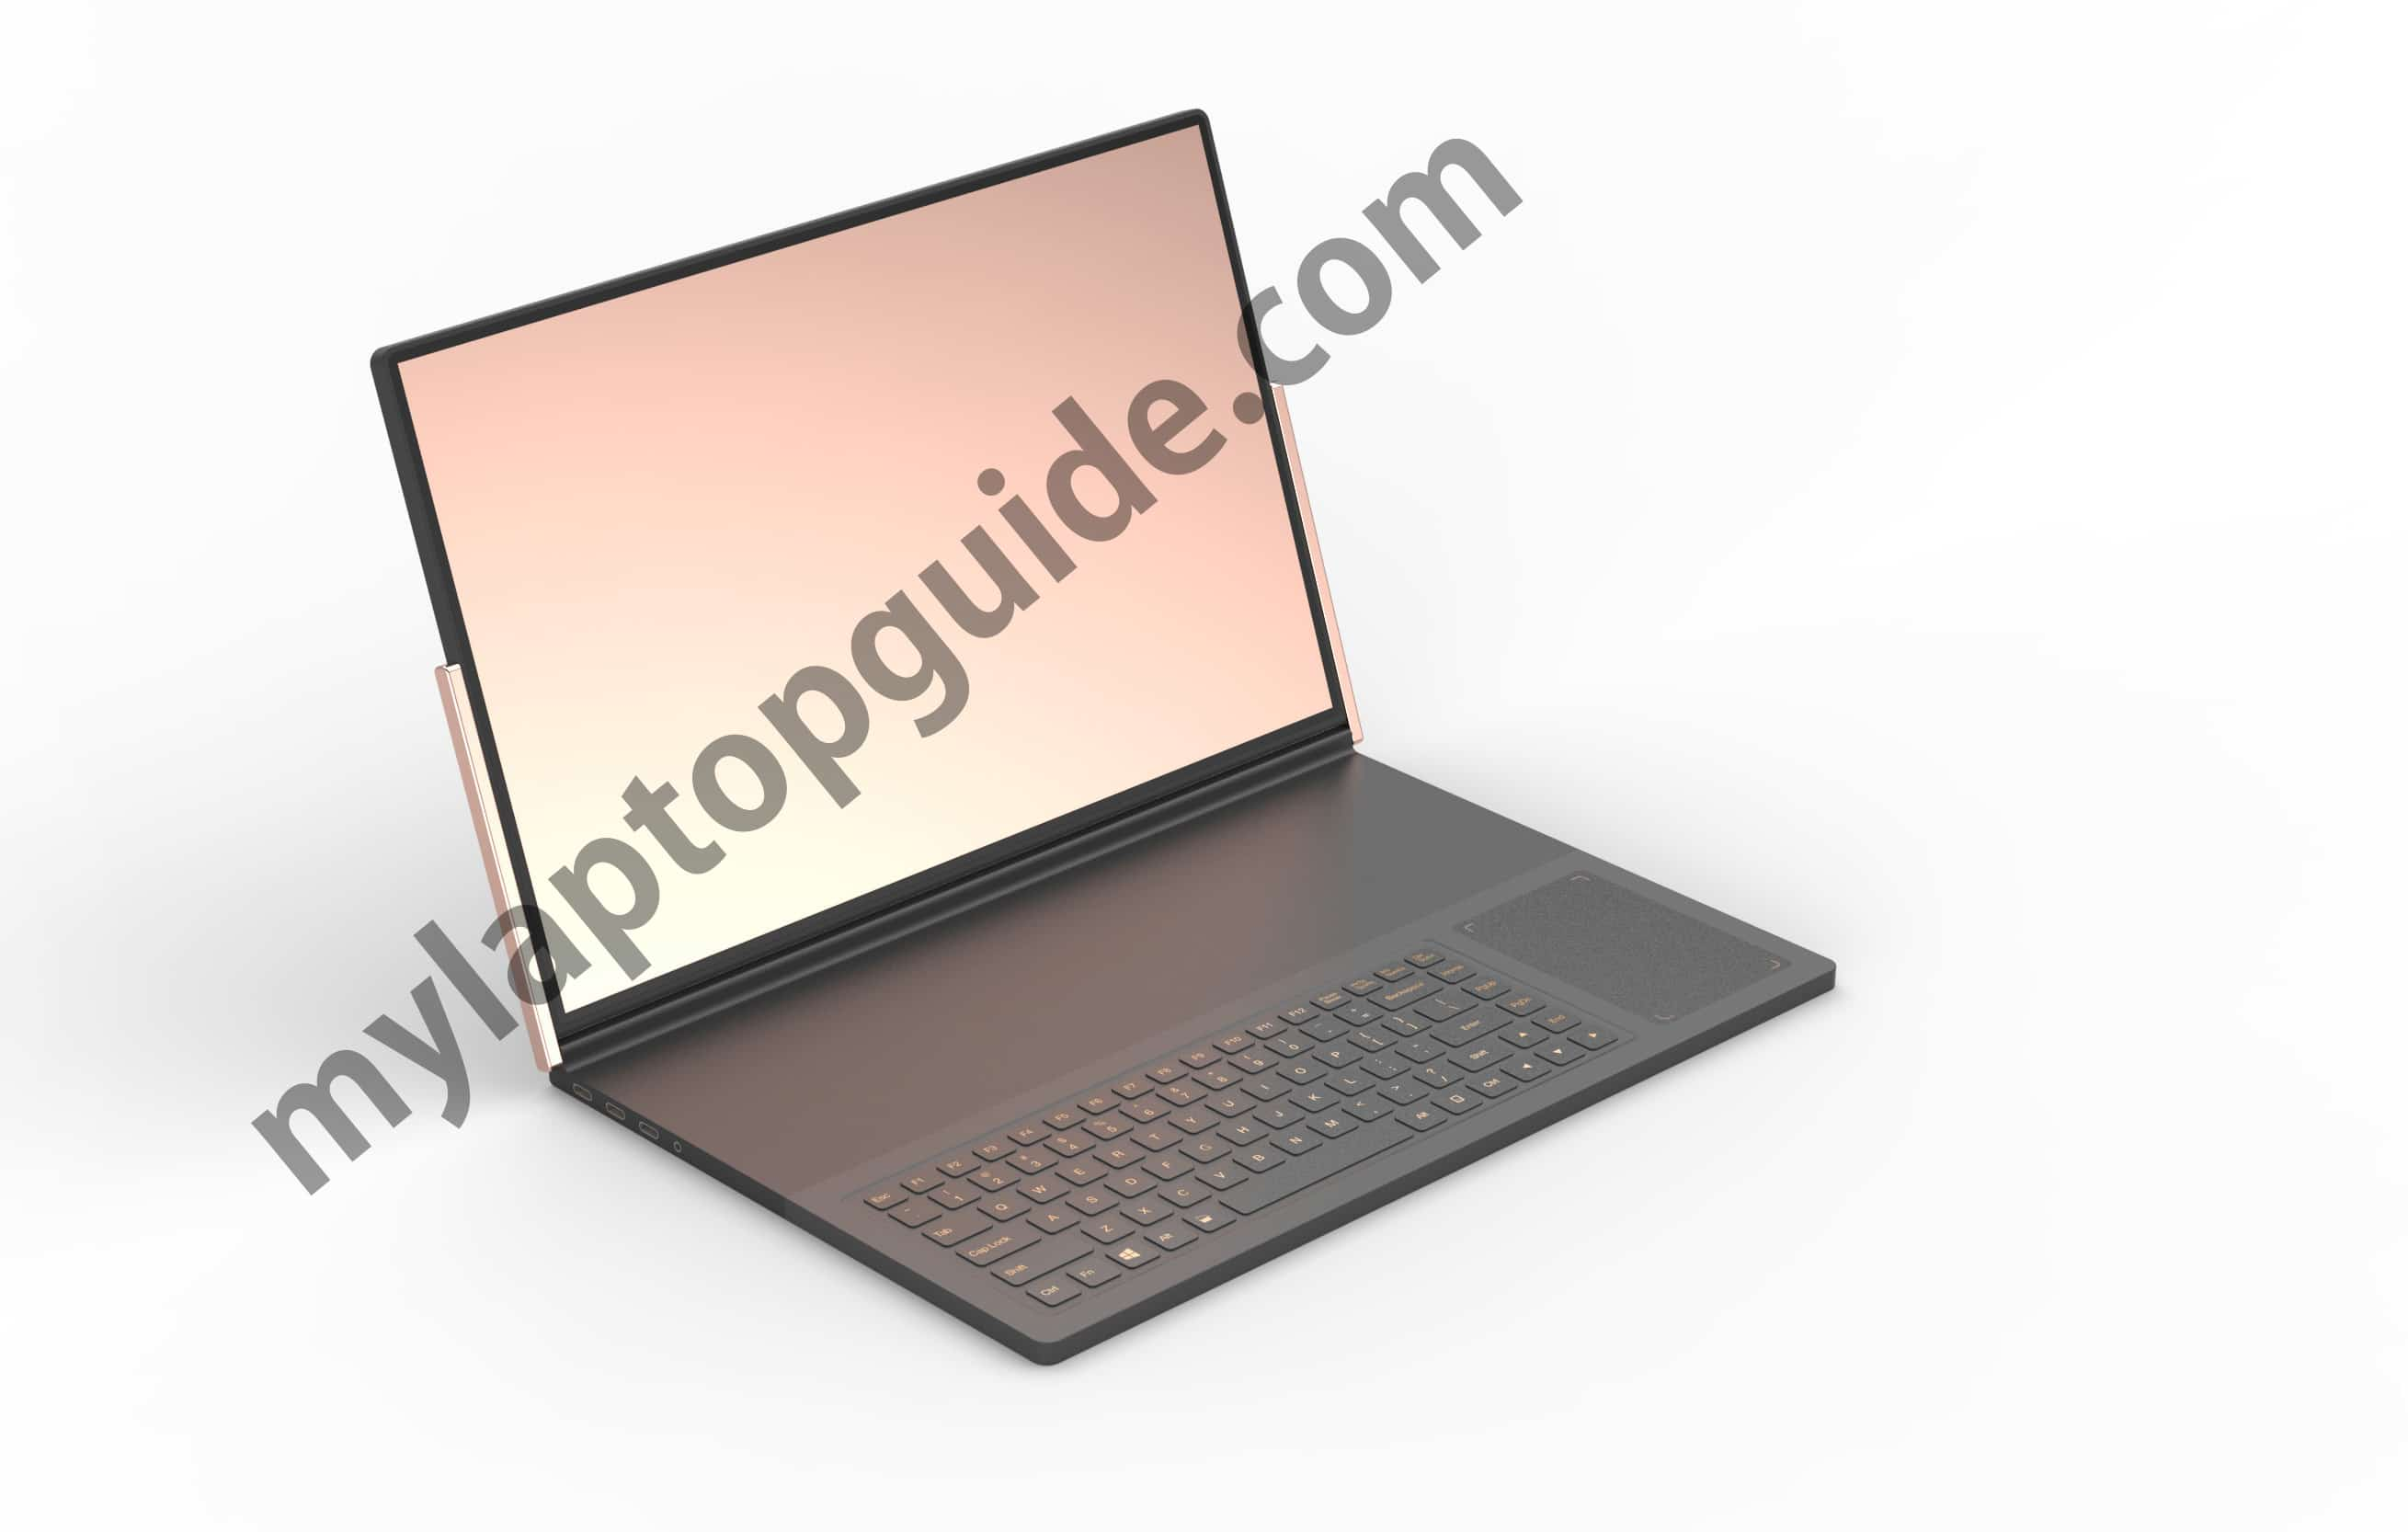 dell shifter laptop mode